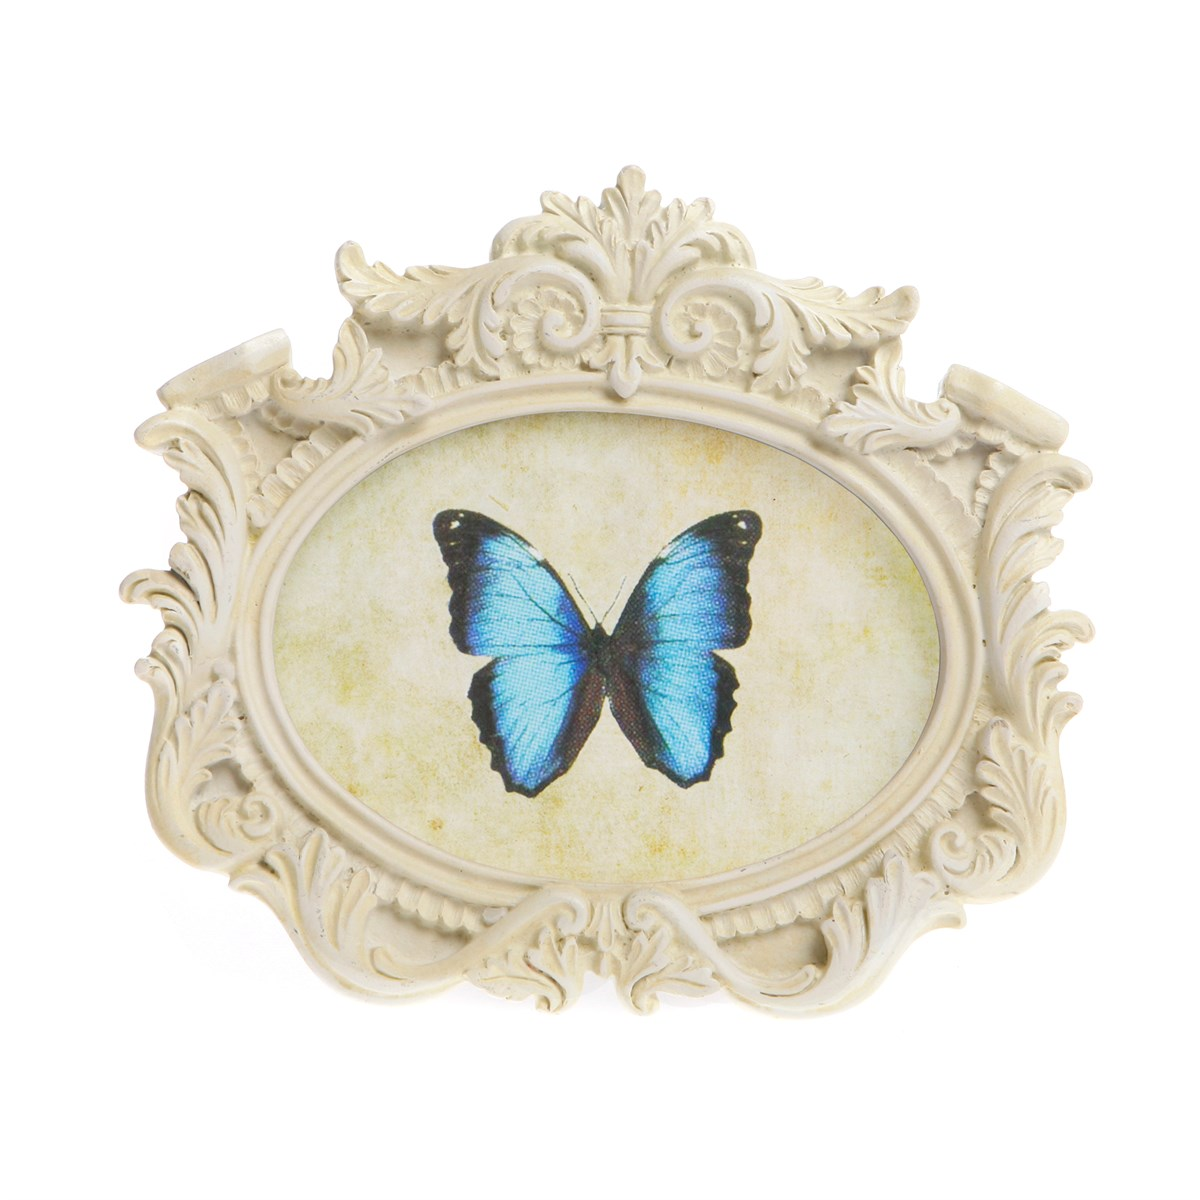 Decorative Oval Landscape Photo Frame